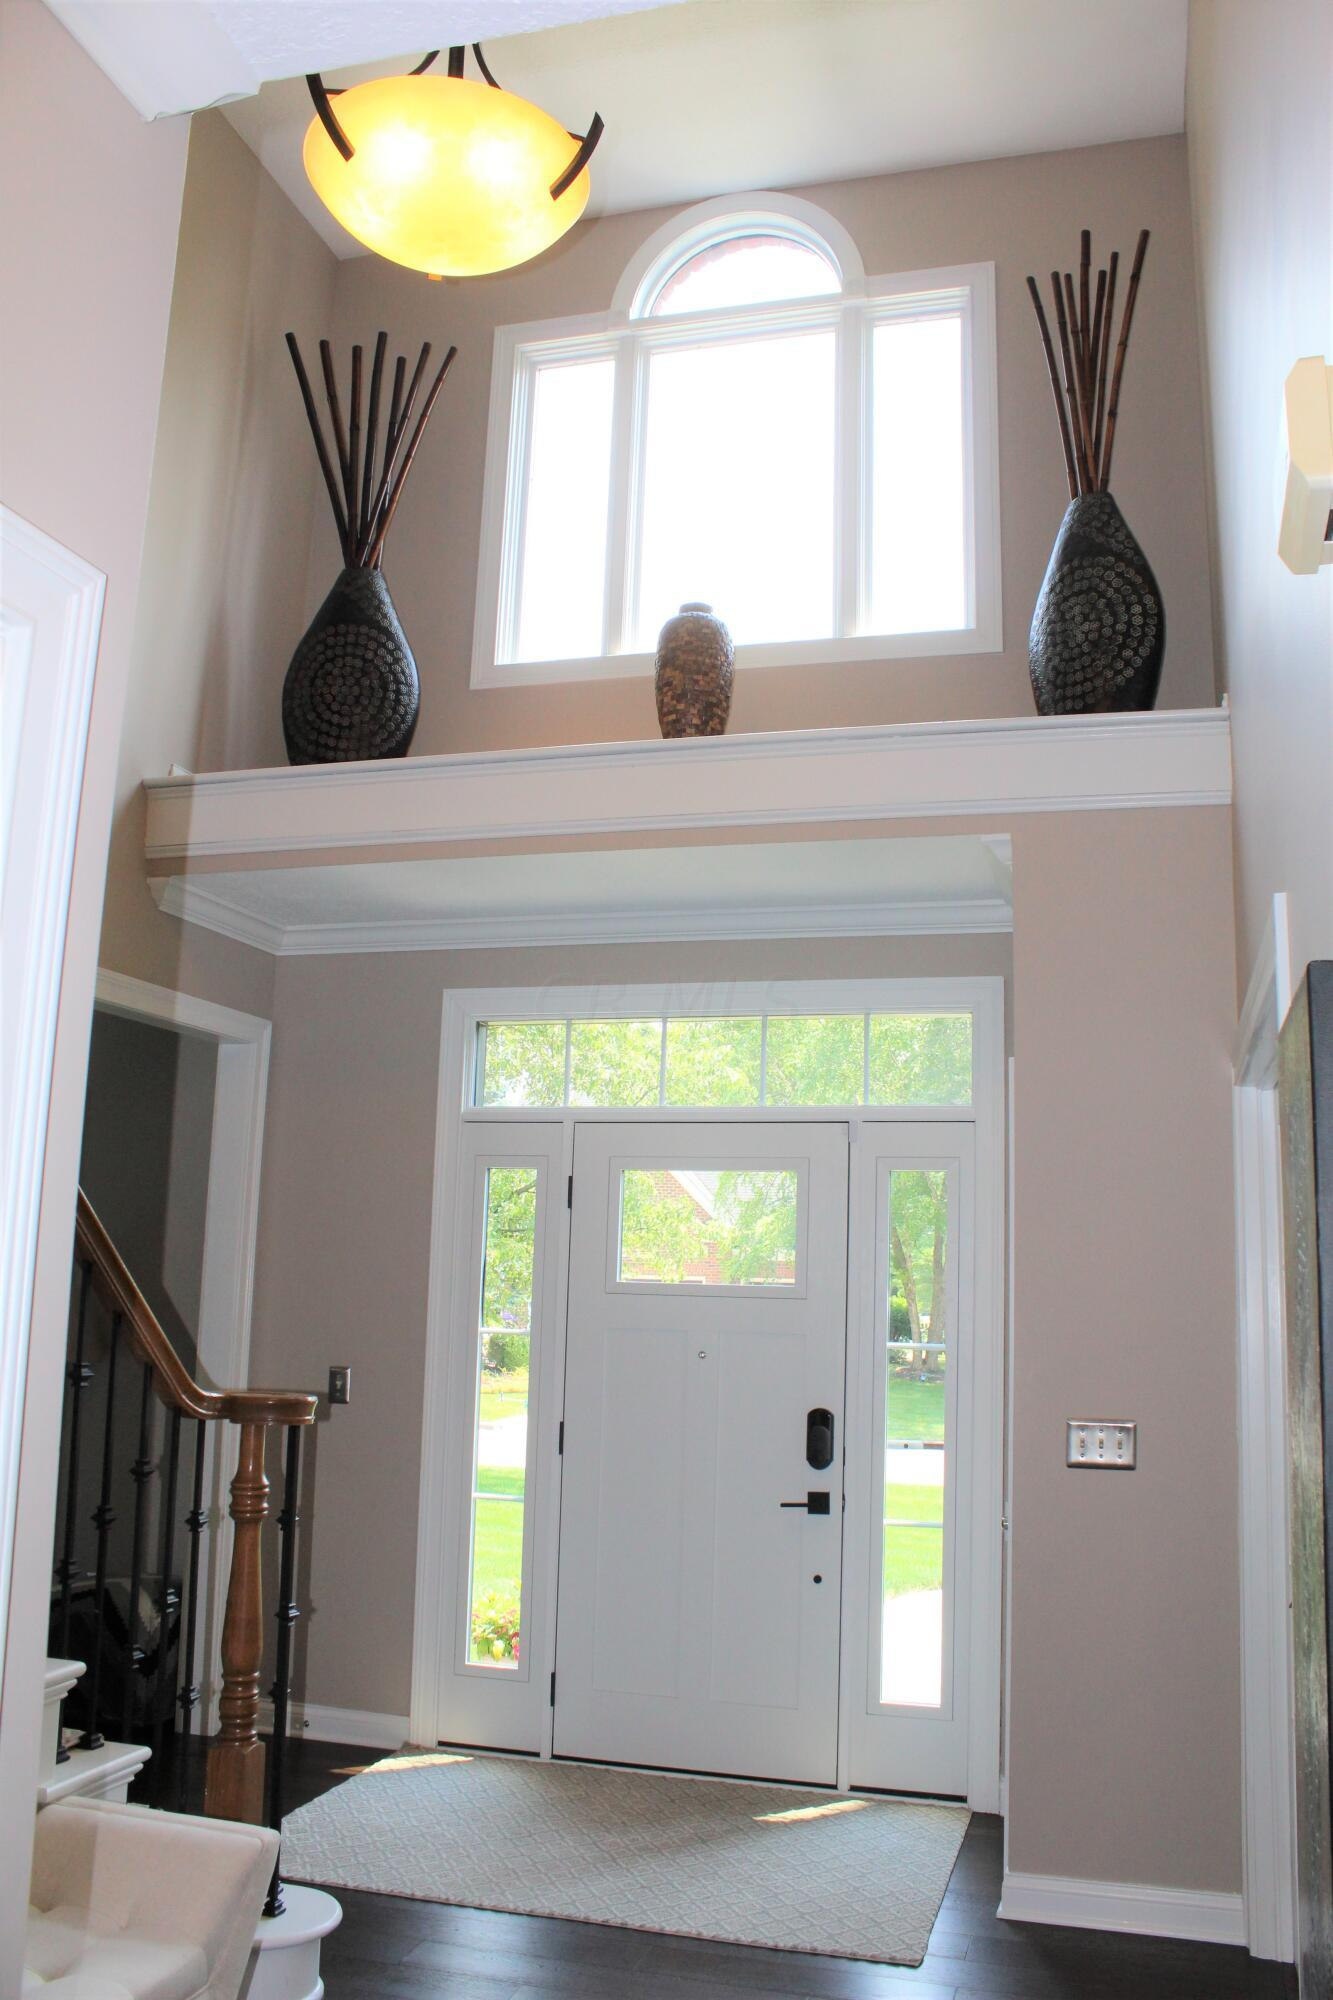 Foyer from kitchen view